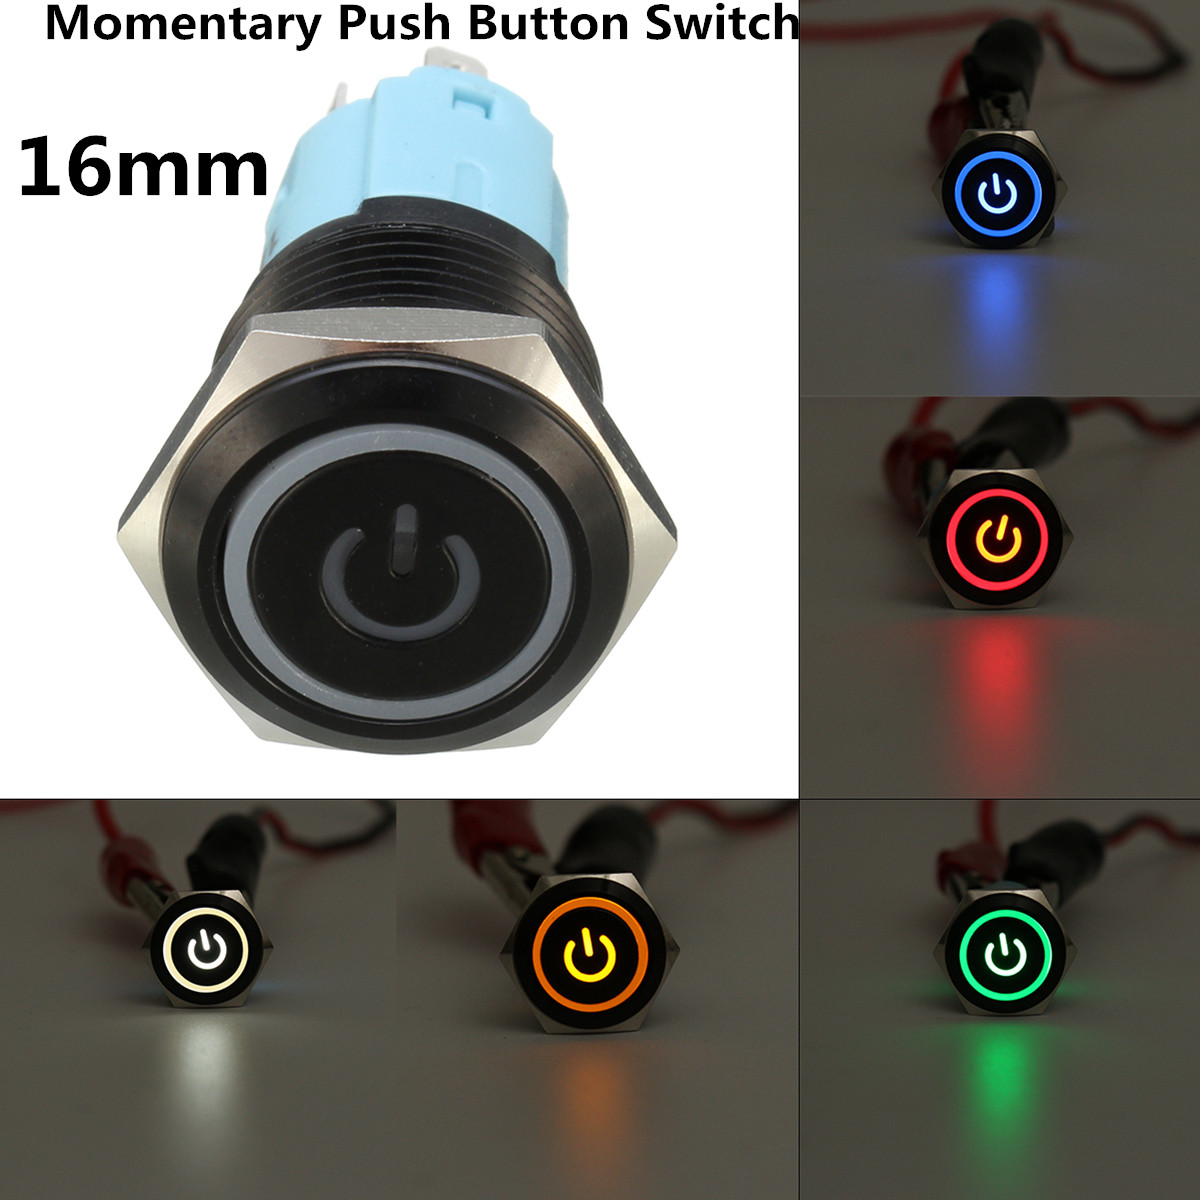 16mm Momentary LED Button Switch